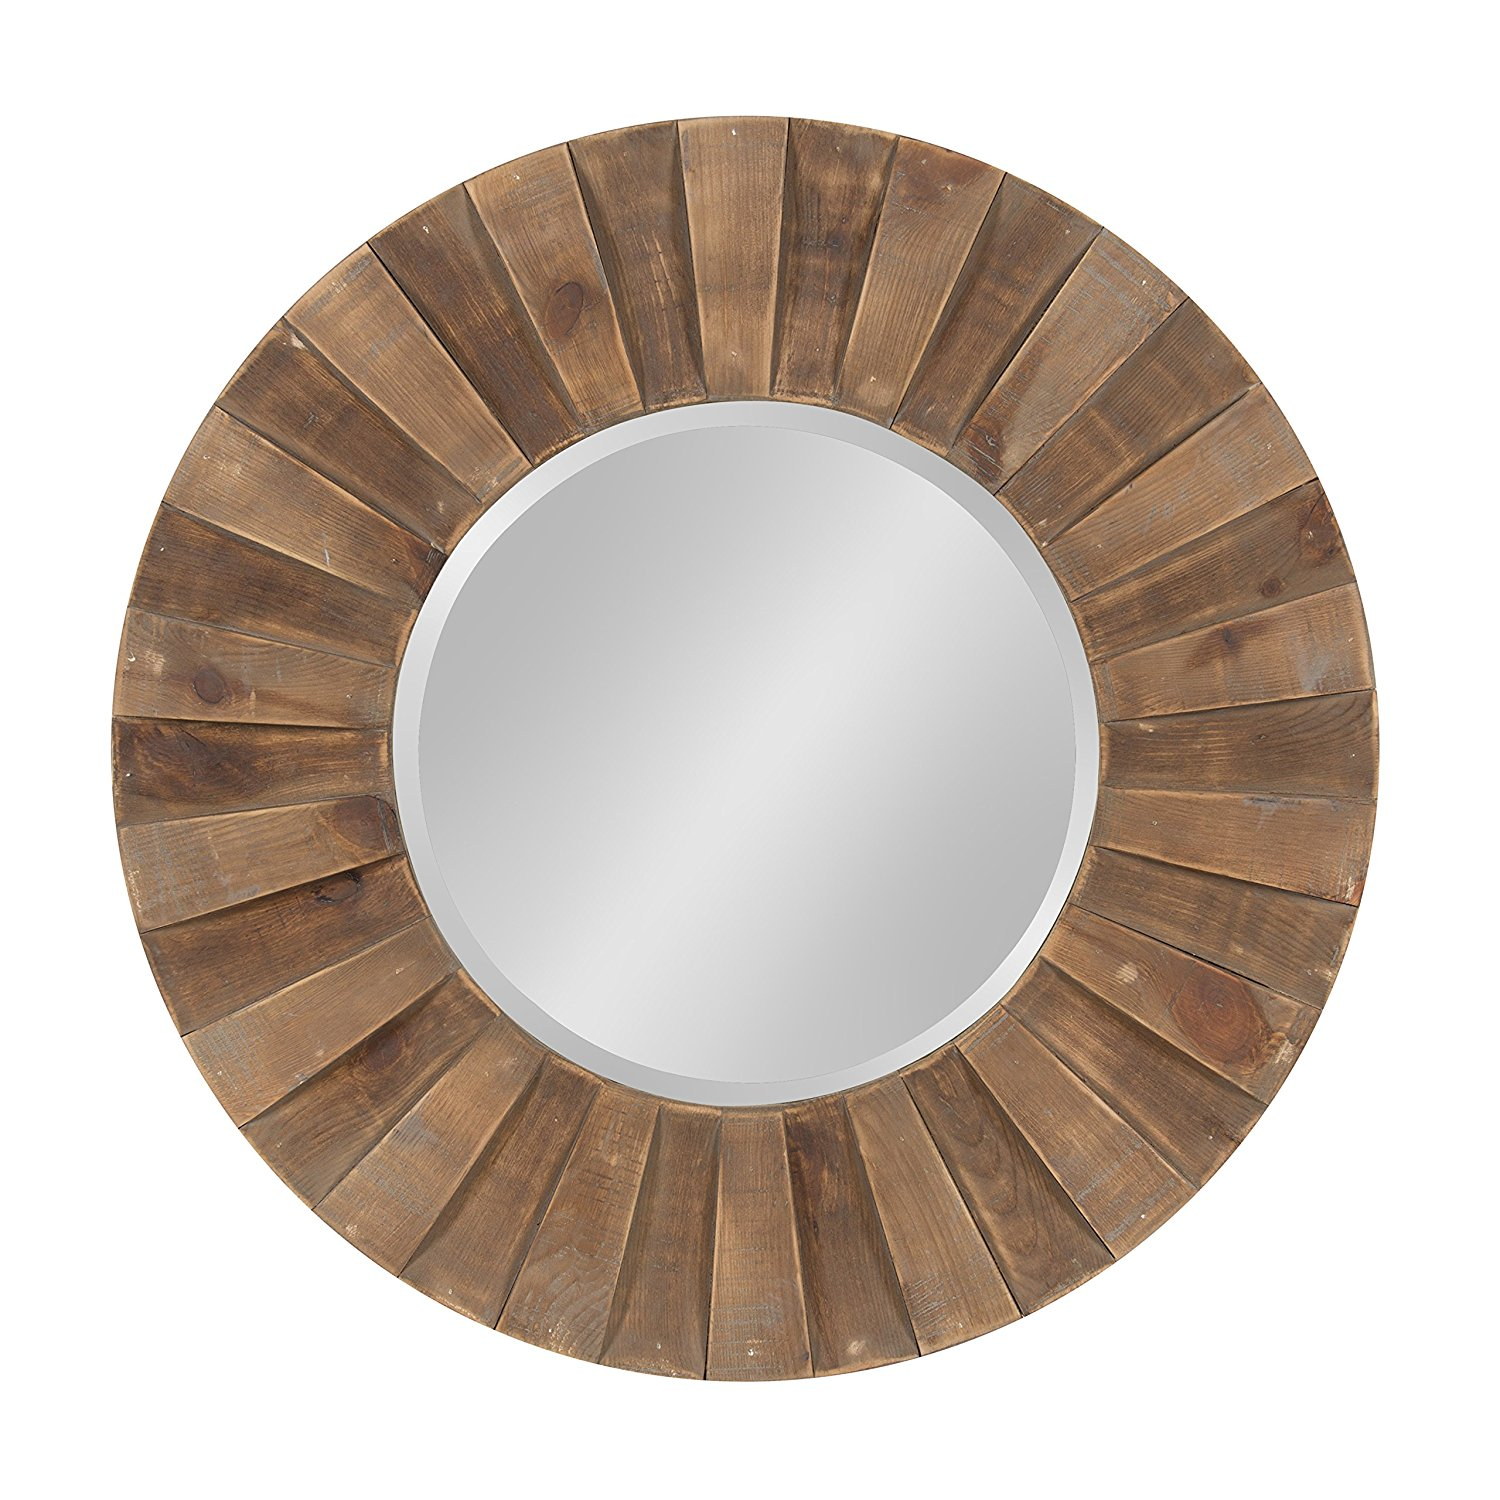 Large Round Decorative Mirror.Large Round Wooden Sunburst Hanging Wall Mirror Buy Wooden Mirror Handmade Decorated Mirrors Decorative Mirror Edging Product On Alibaba Com